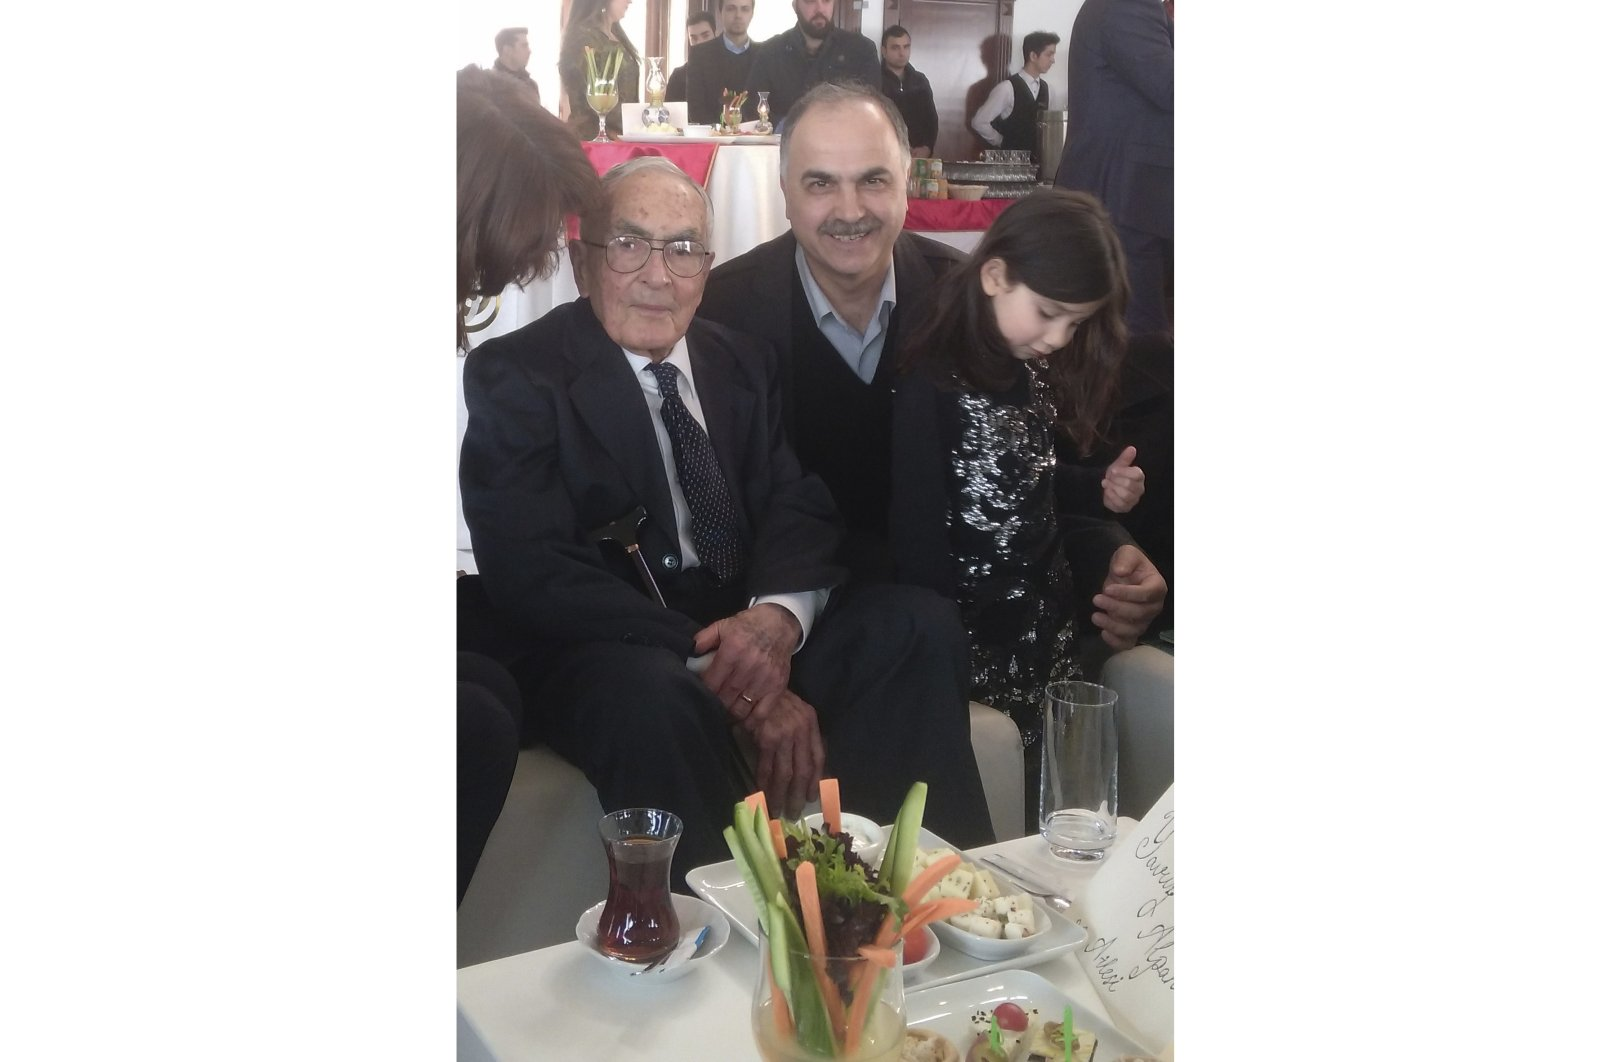 """Sultanzade Yavuz Alpan (L) poses for the camera with his granddaughter Aya and historian Ibrahim Pazan at the gala of the documentary """"Bilun: The Last Witness of Exile"""" in Istanbul on Feb. 28, 2017. (IHA Photo)"""